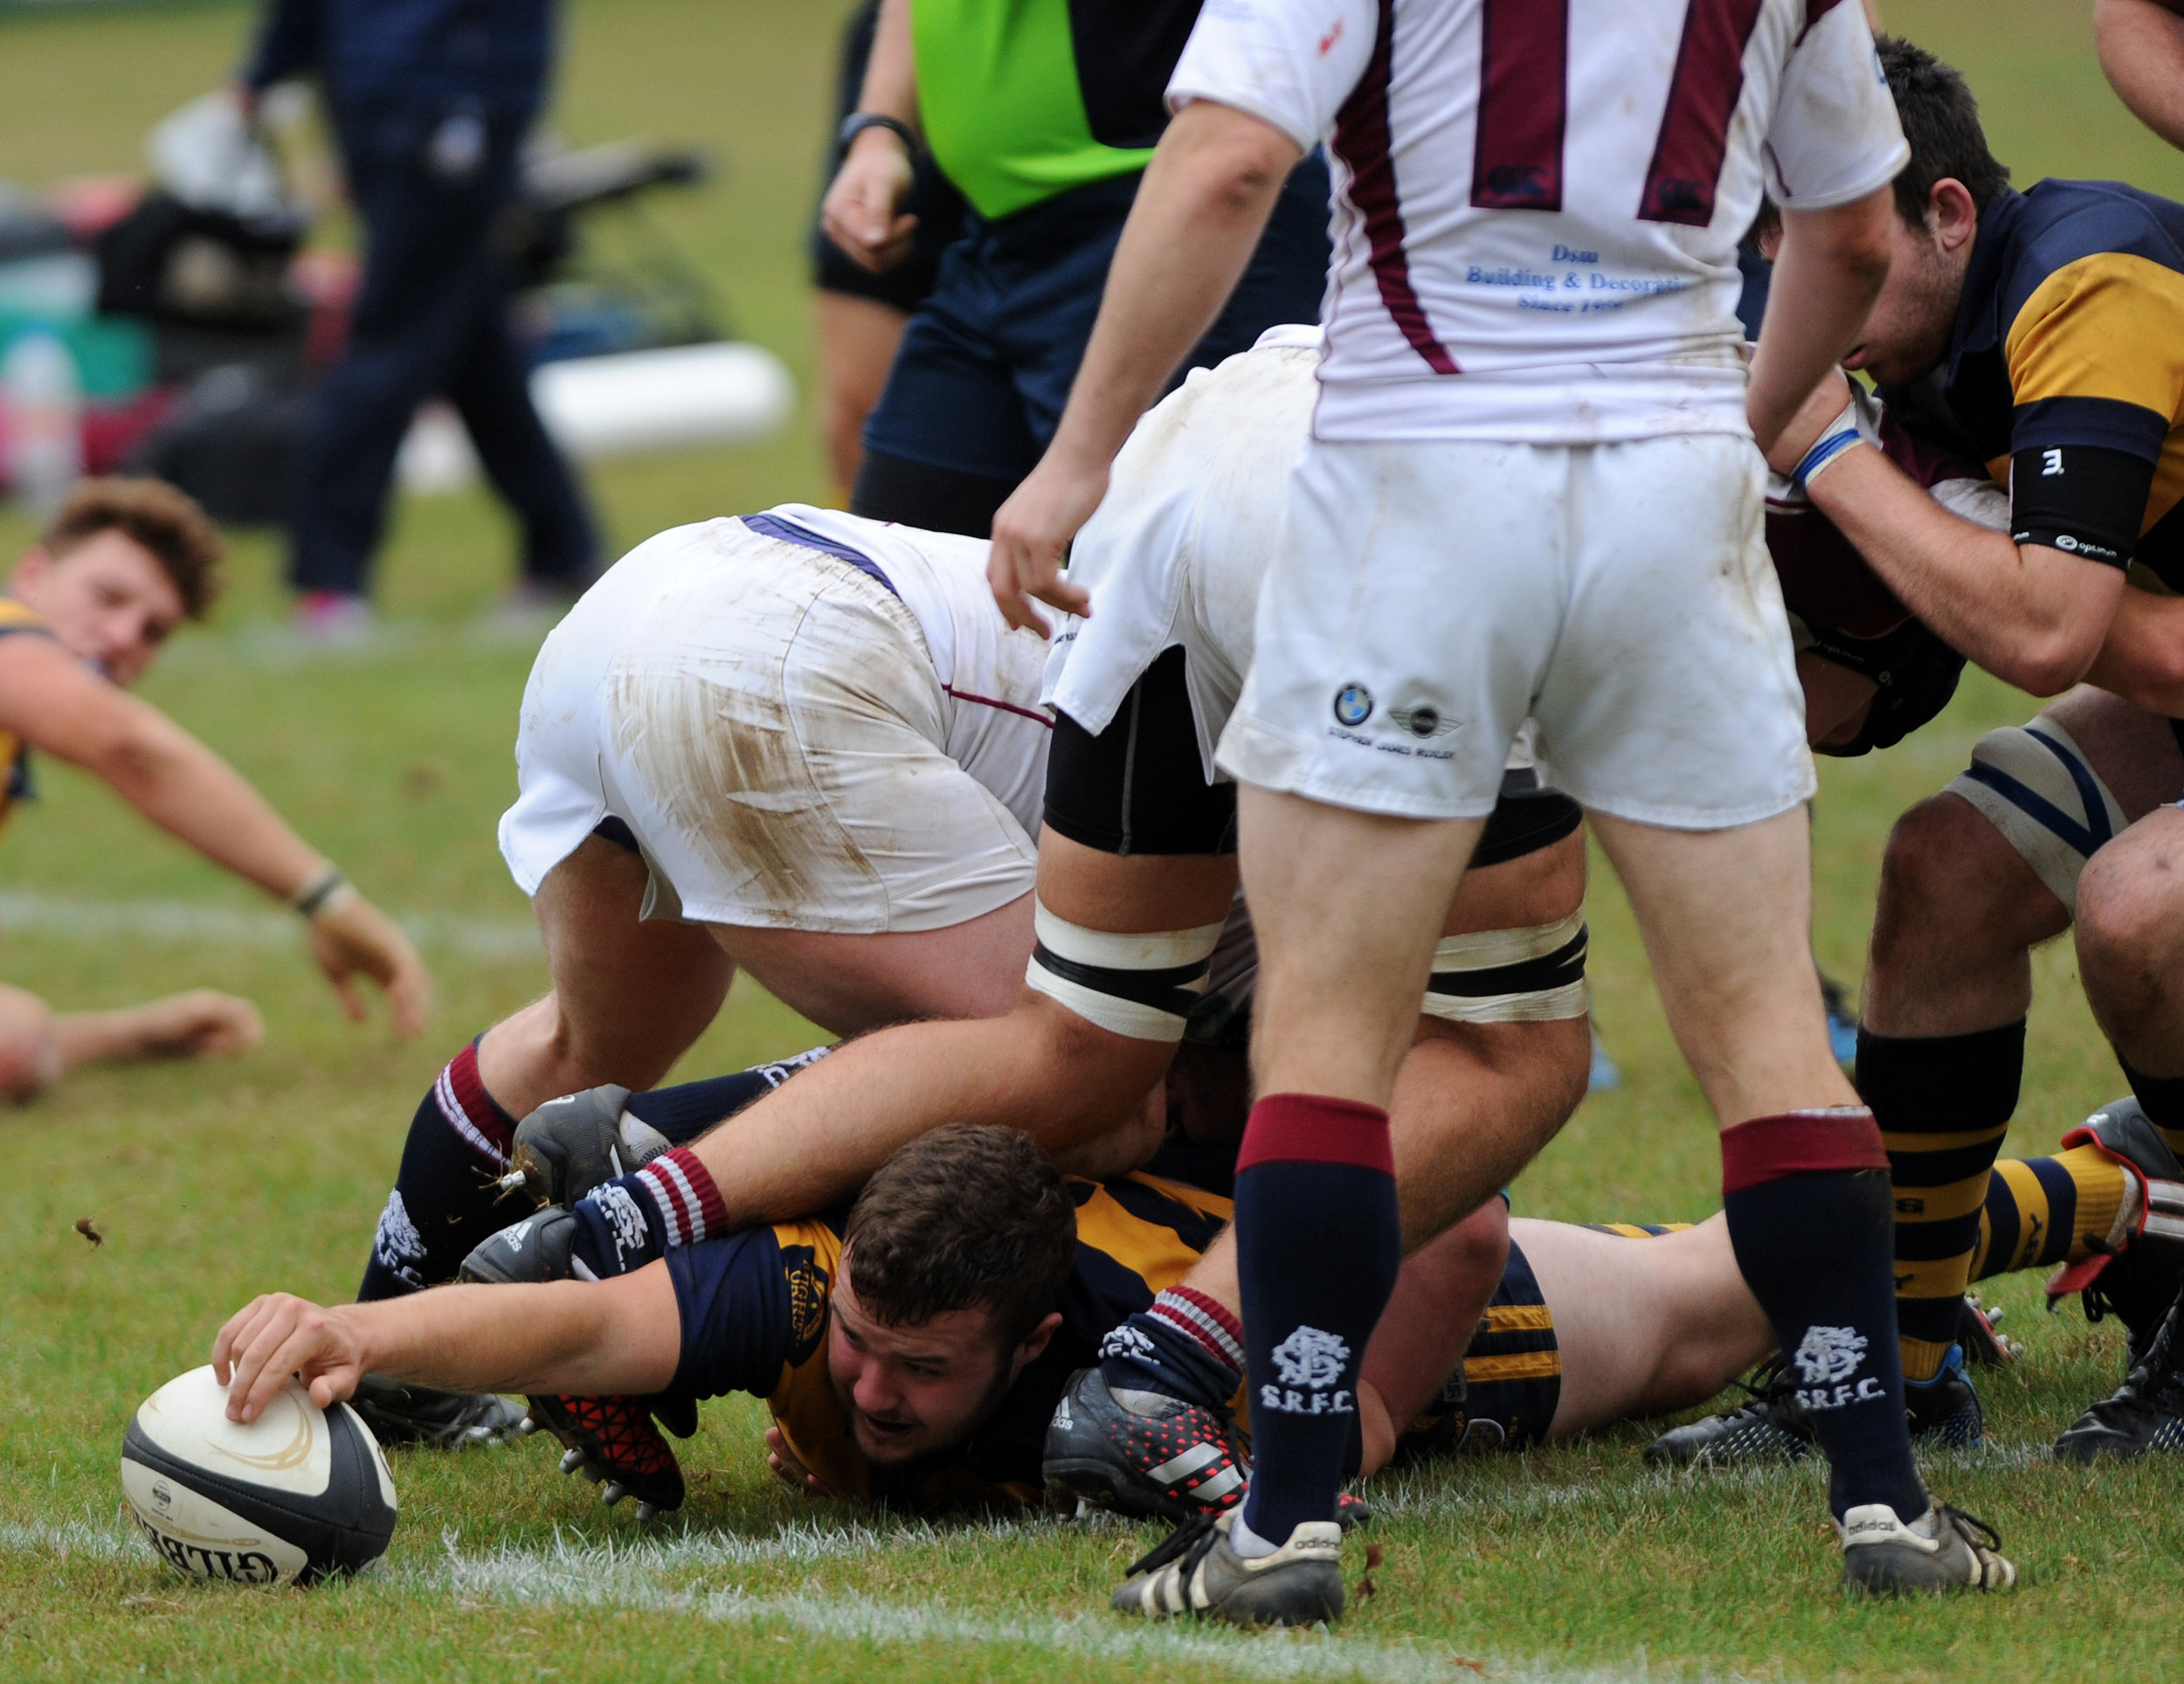 SEVENOAKS RUGBY 2ND XV VERSUS SIDCUP 17 SEPT 2016 Photos Credit: David Purday